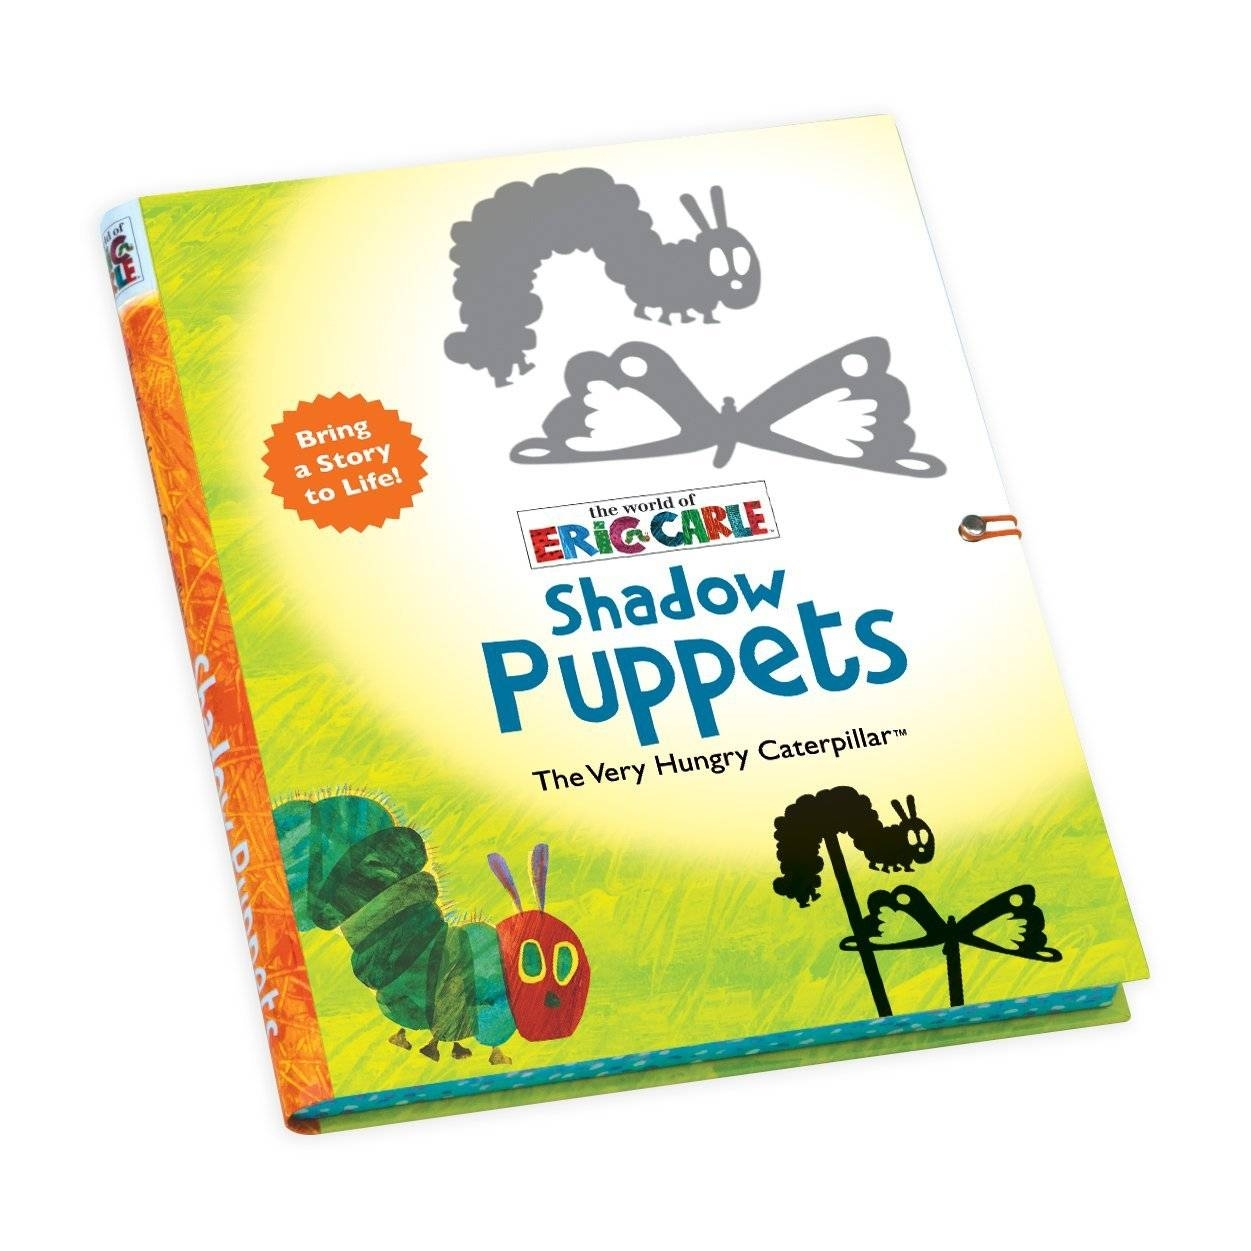 Very Hungry Caterpillar Shadow Puppet Set | The Eric Carle Museum Pertaining To Best And Newest The Very Hungry Caterpillar Wall Art (View 20 of 25)